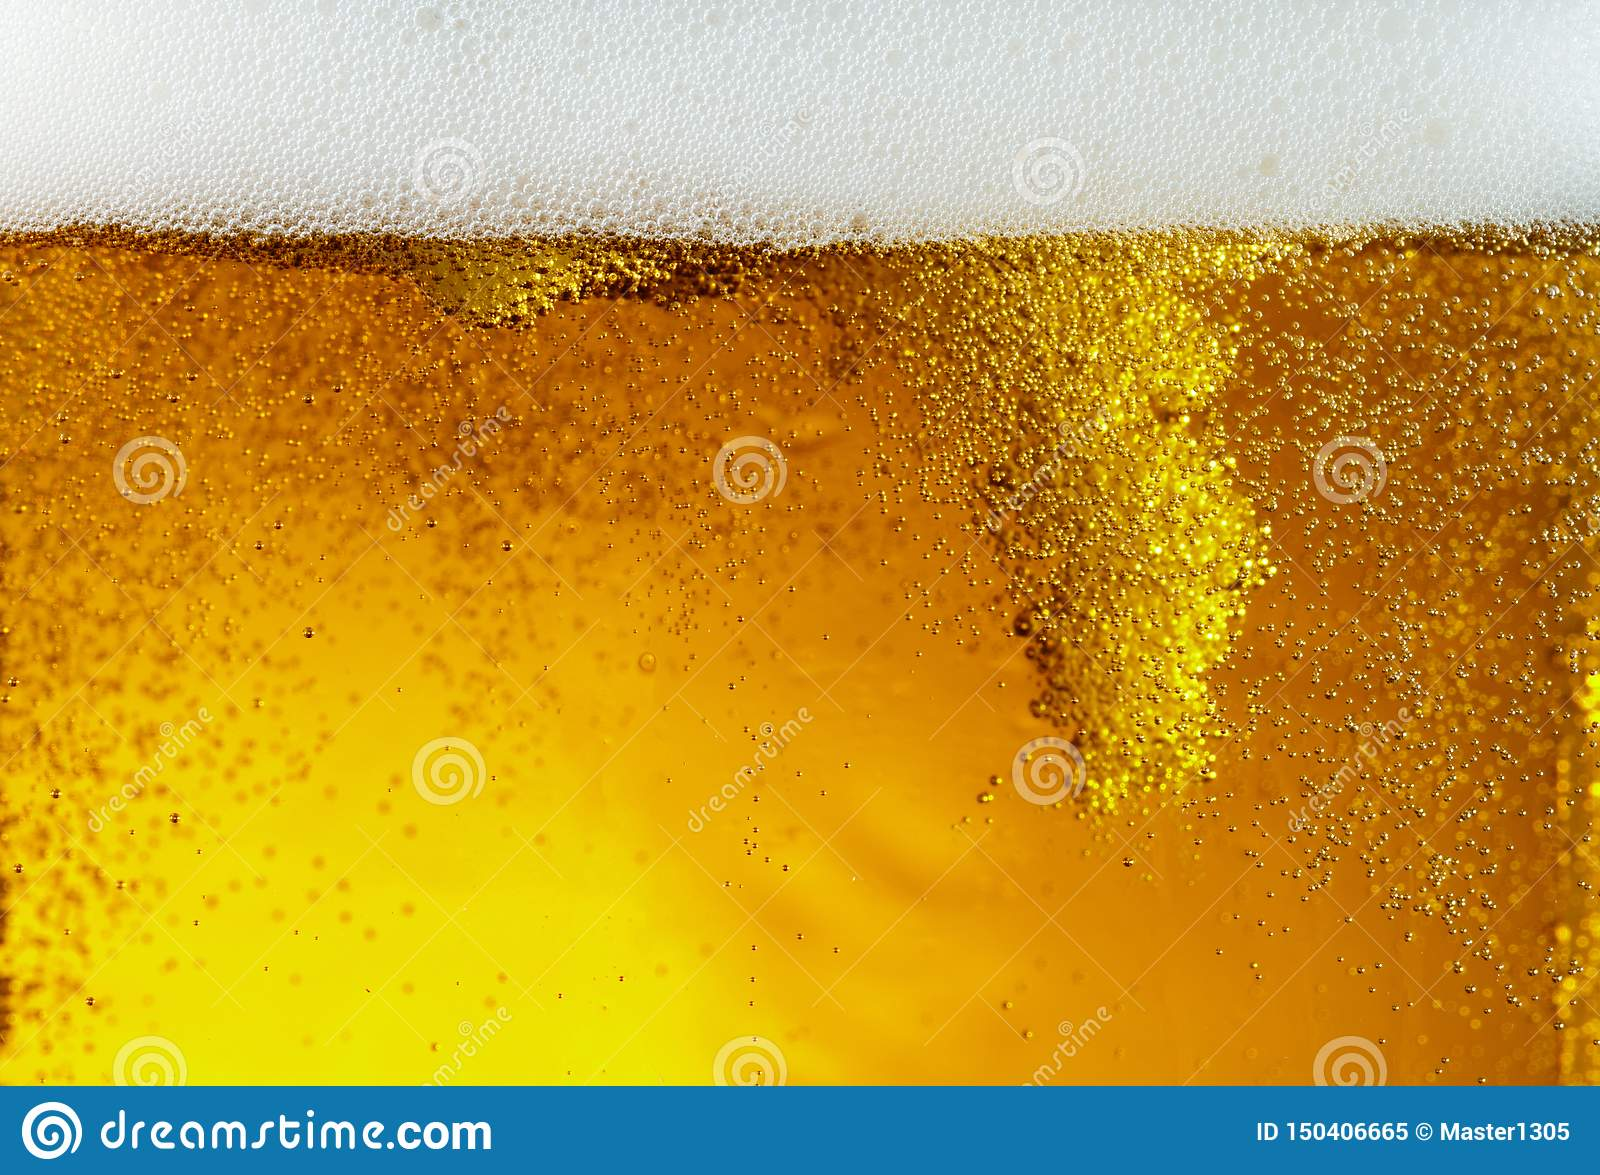 Close up view of floating bubbles in light beer texture